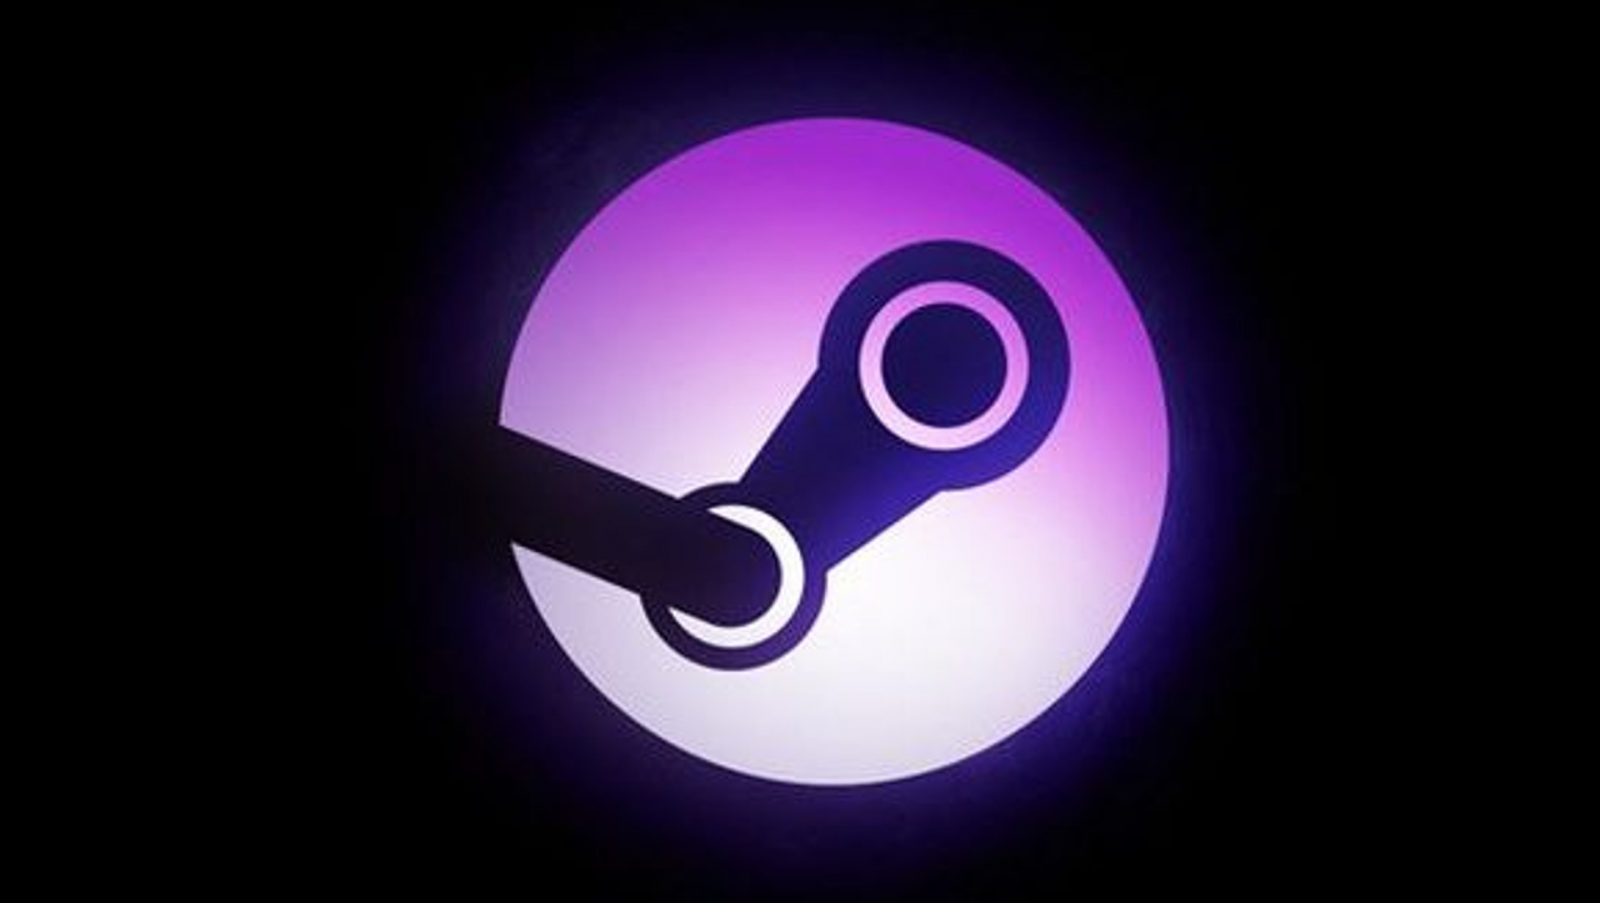 The Steam autumn 2019 sale starts later today, according to SteamDB